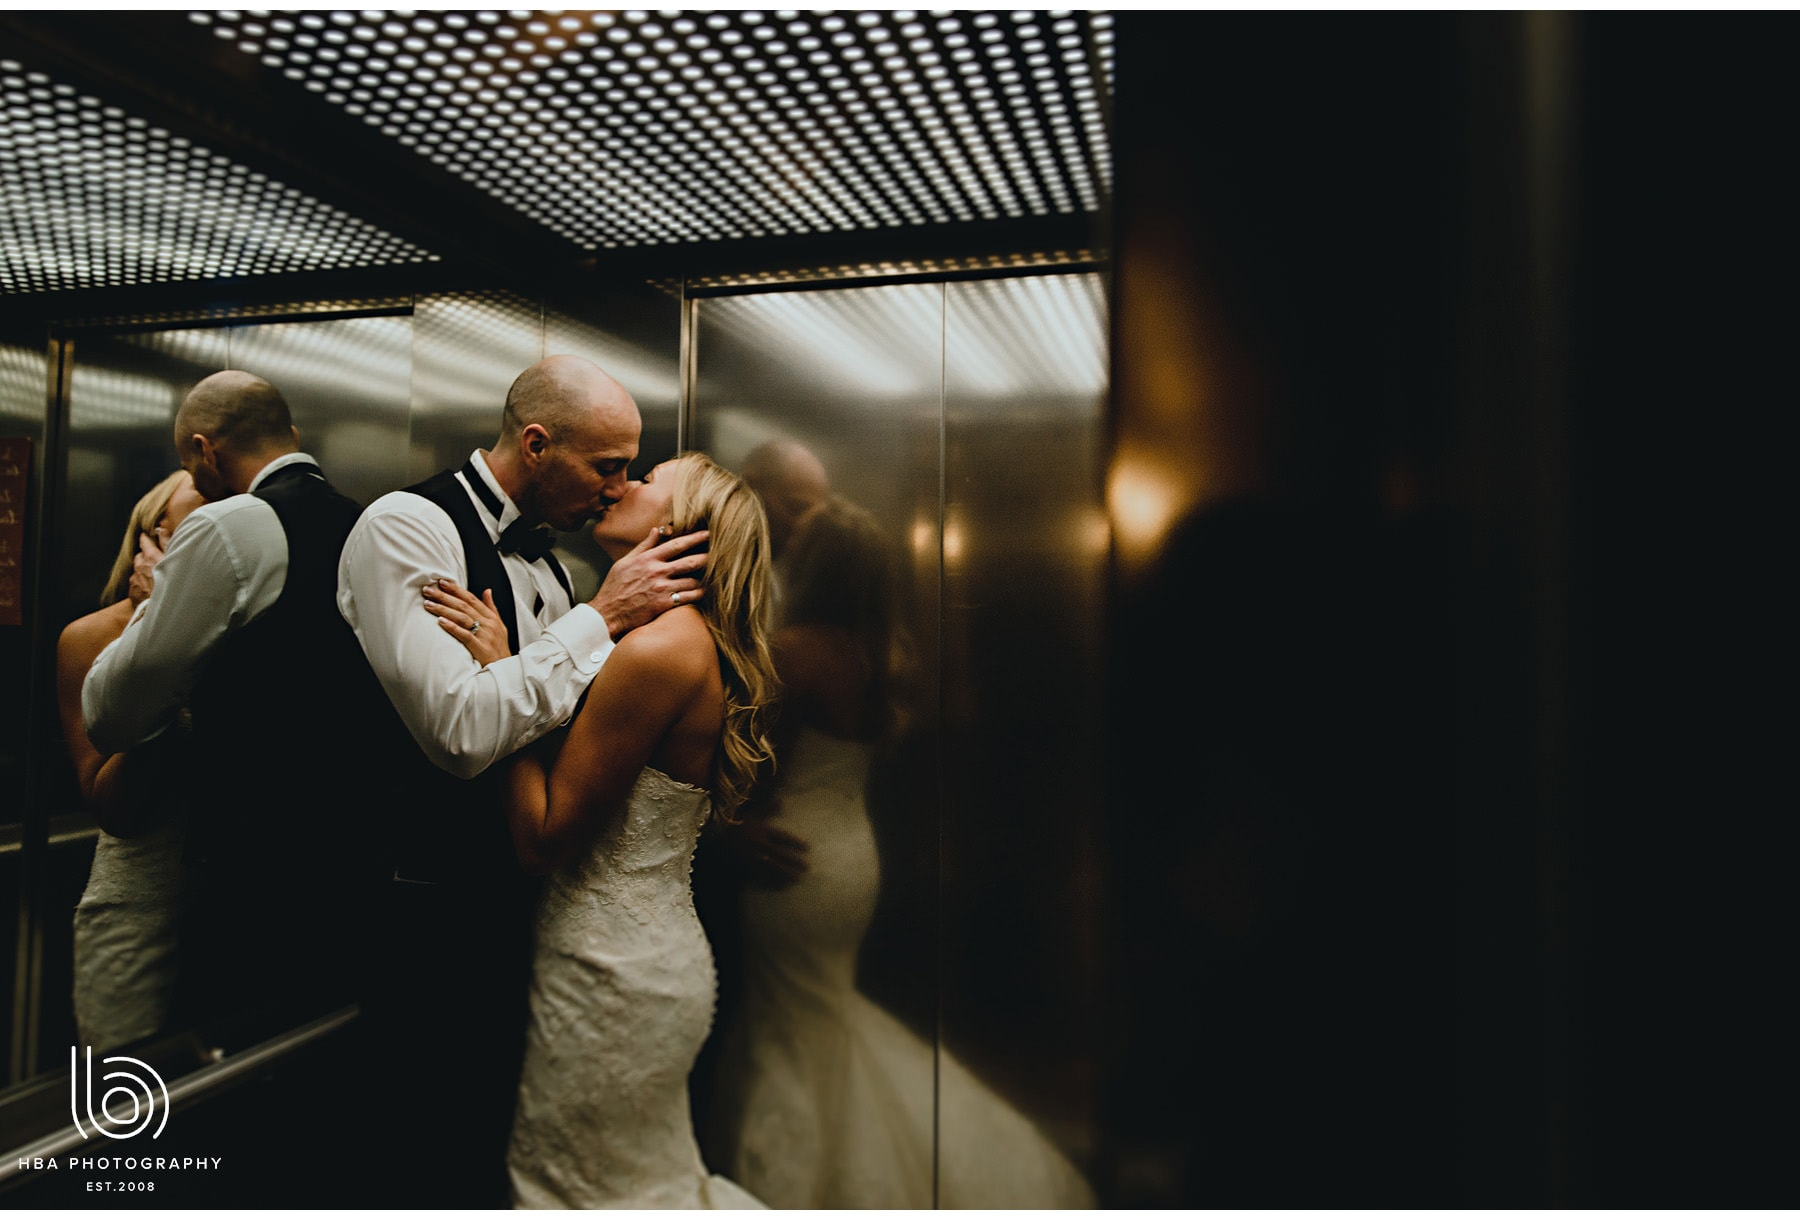 the bride & groom kissing in the lift